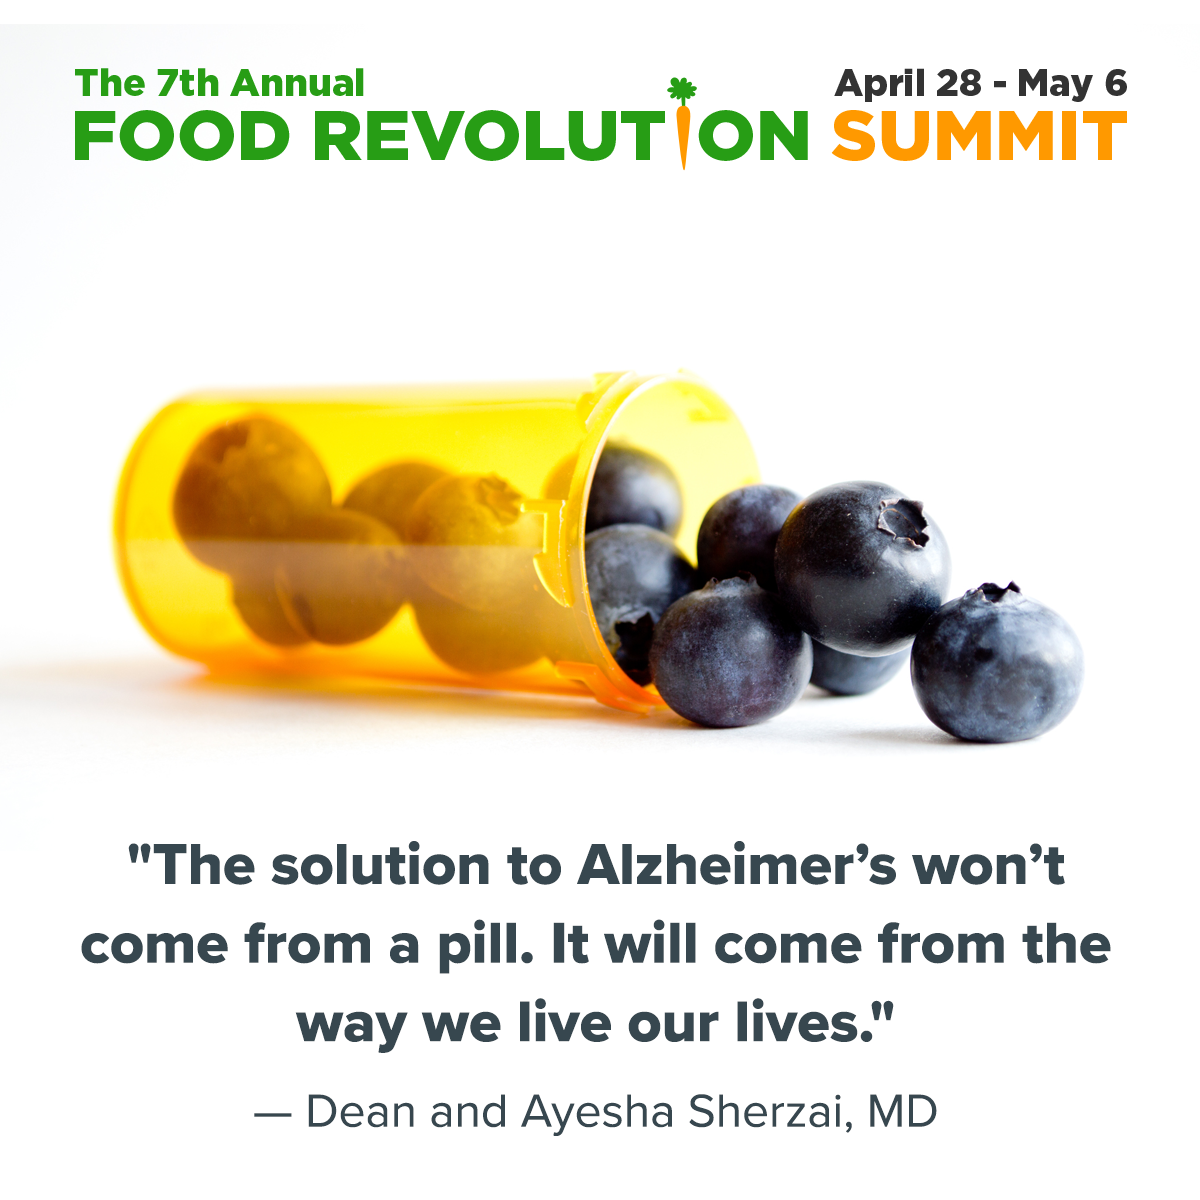 Don't miss Dean and Ayesha Sherzai, MD during the 2018